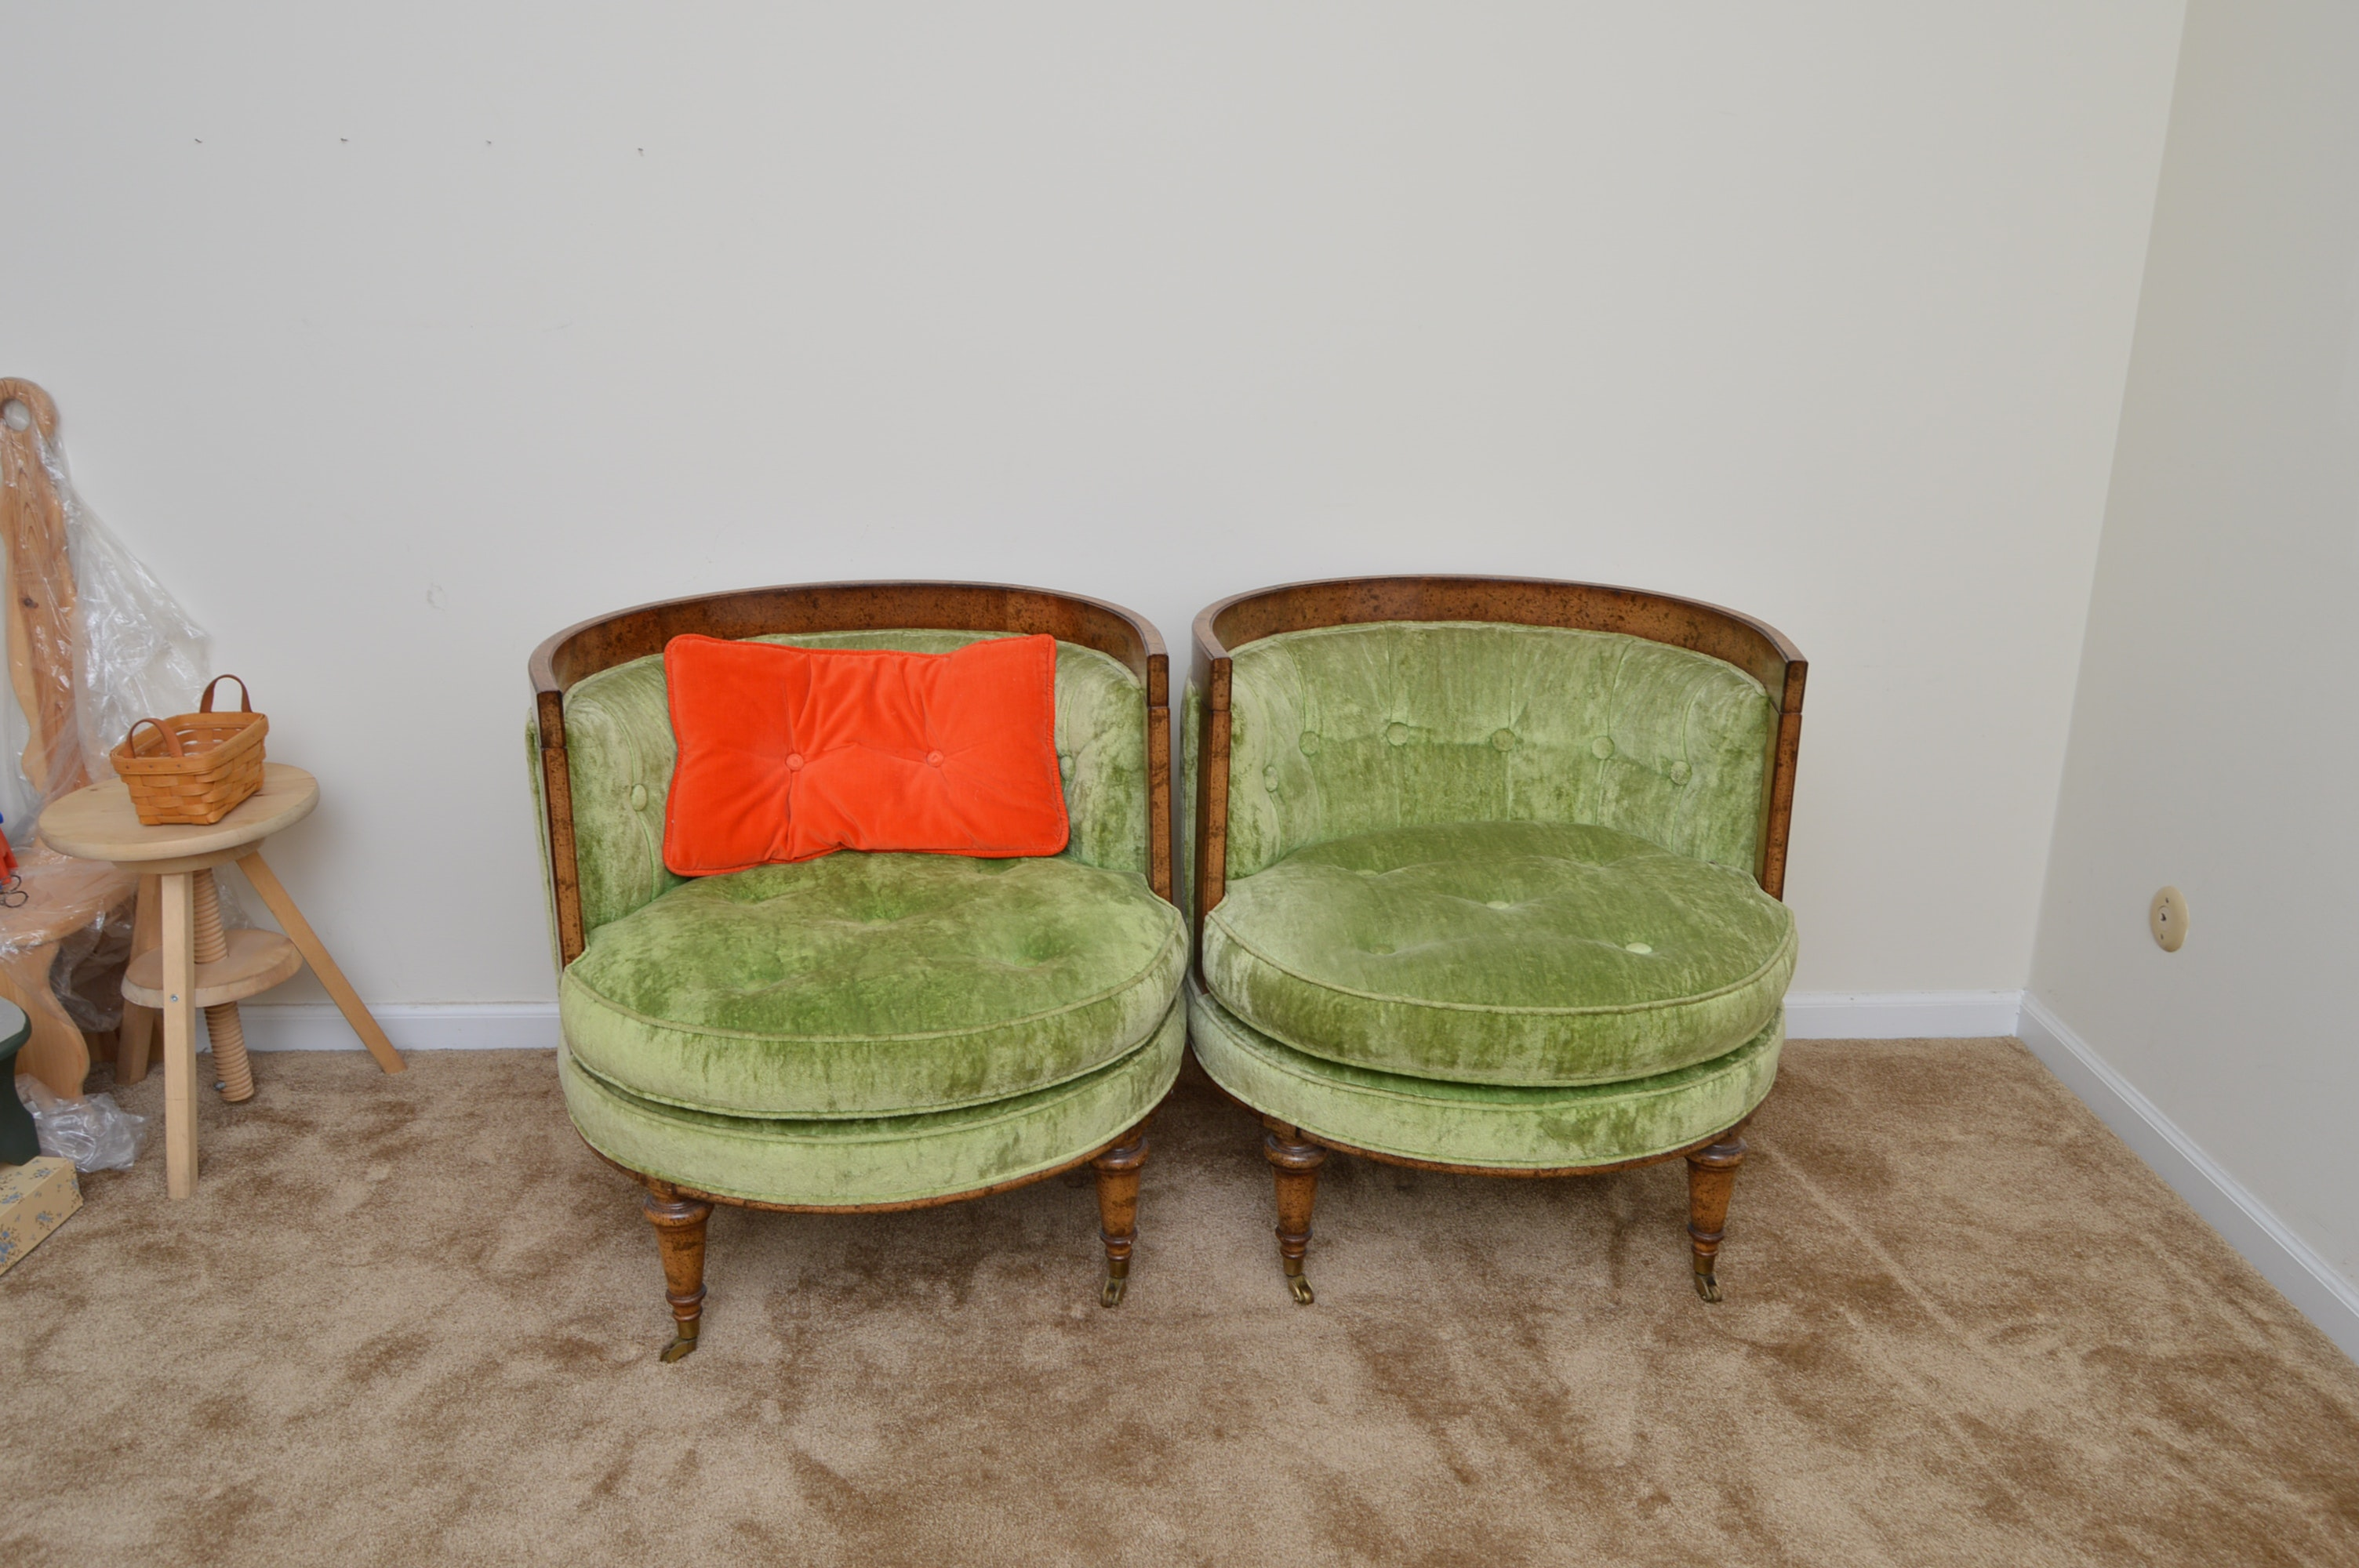 Vintage Mid Century Upholstered Barrel Back Chairs By Oxford, LTD.